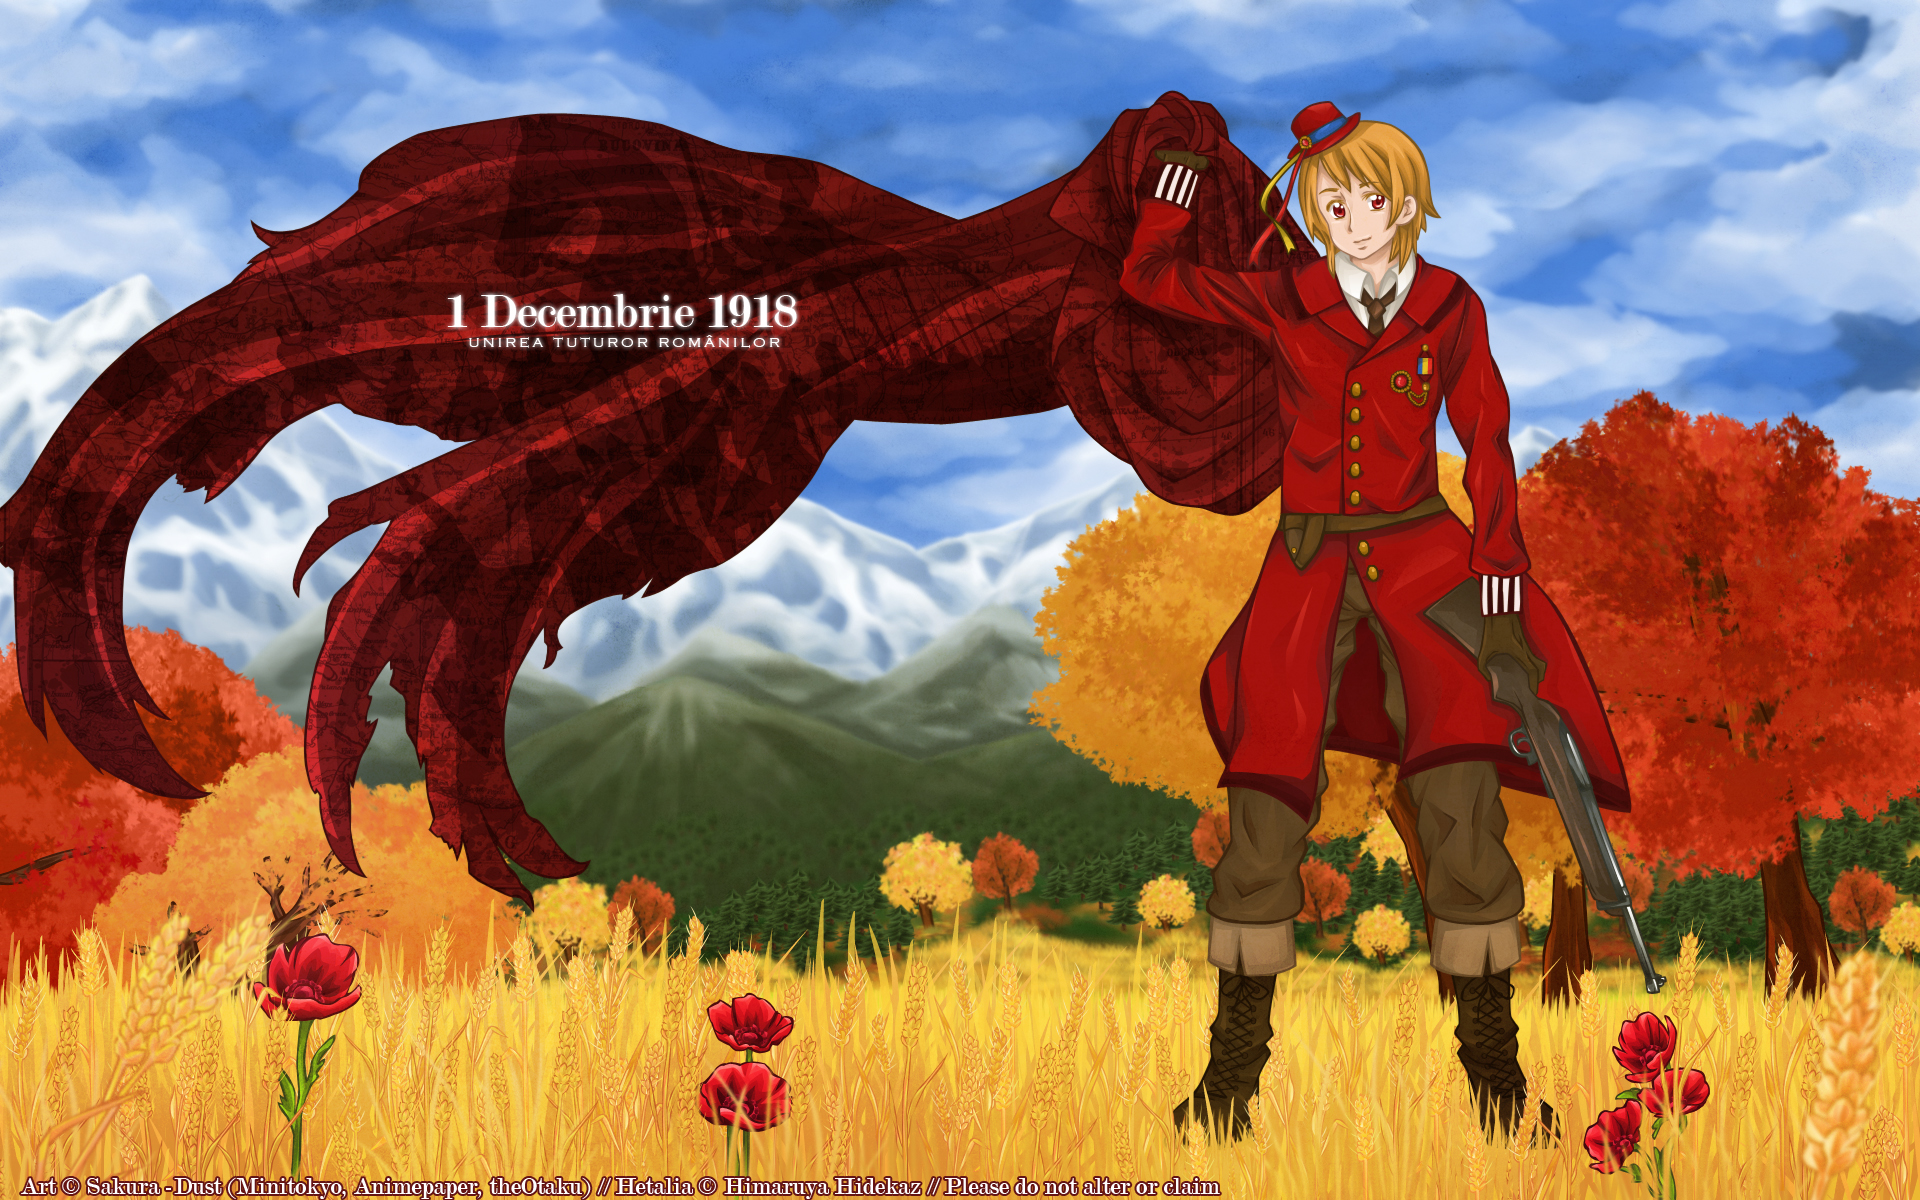 Hetalia Axis Powers Wallpaper 1 Decembrie Minitokyo